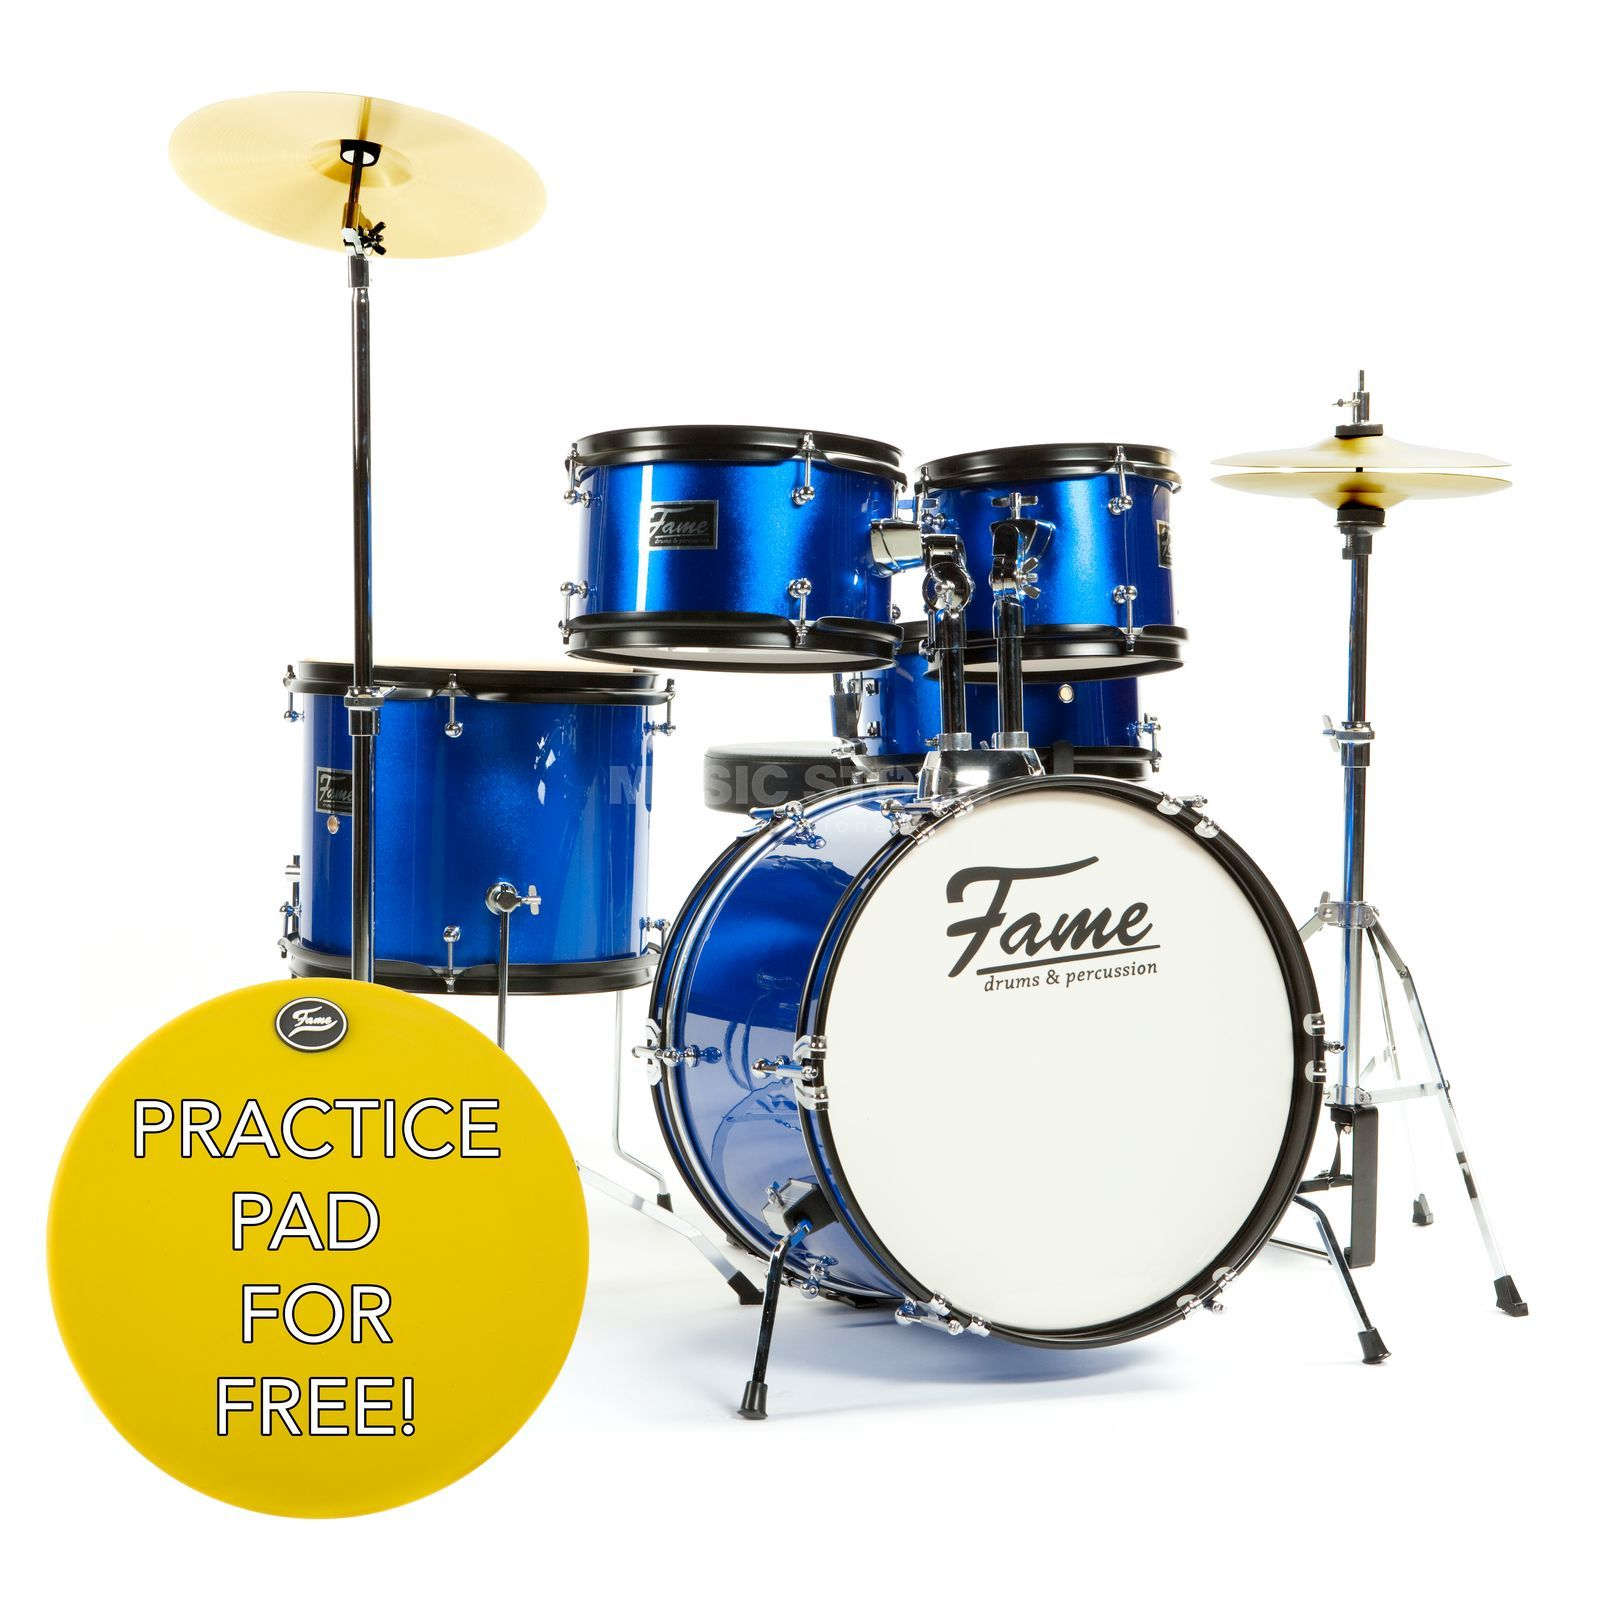 "Fame Kiddyset 5 PC Junior Drumset ""Elias"", Blue Produktbild"